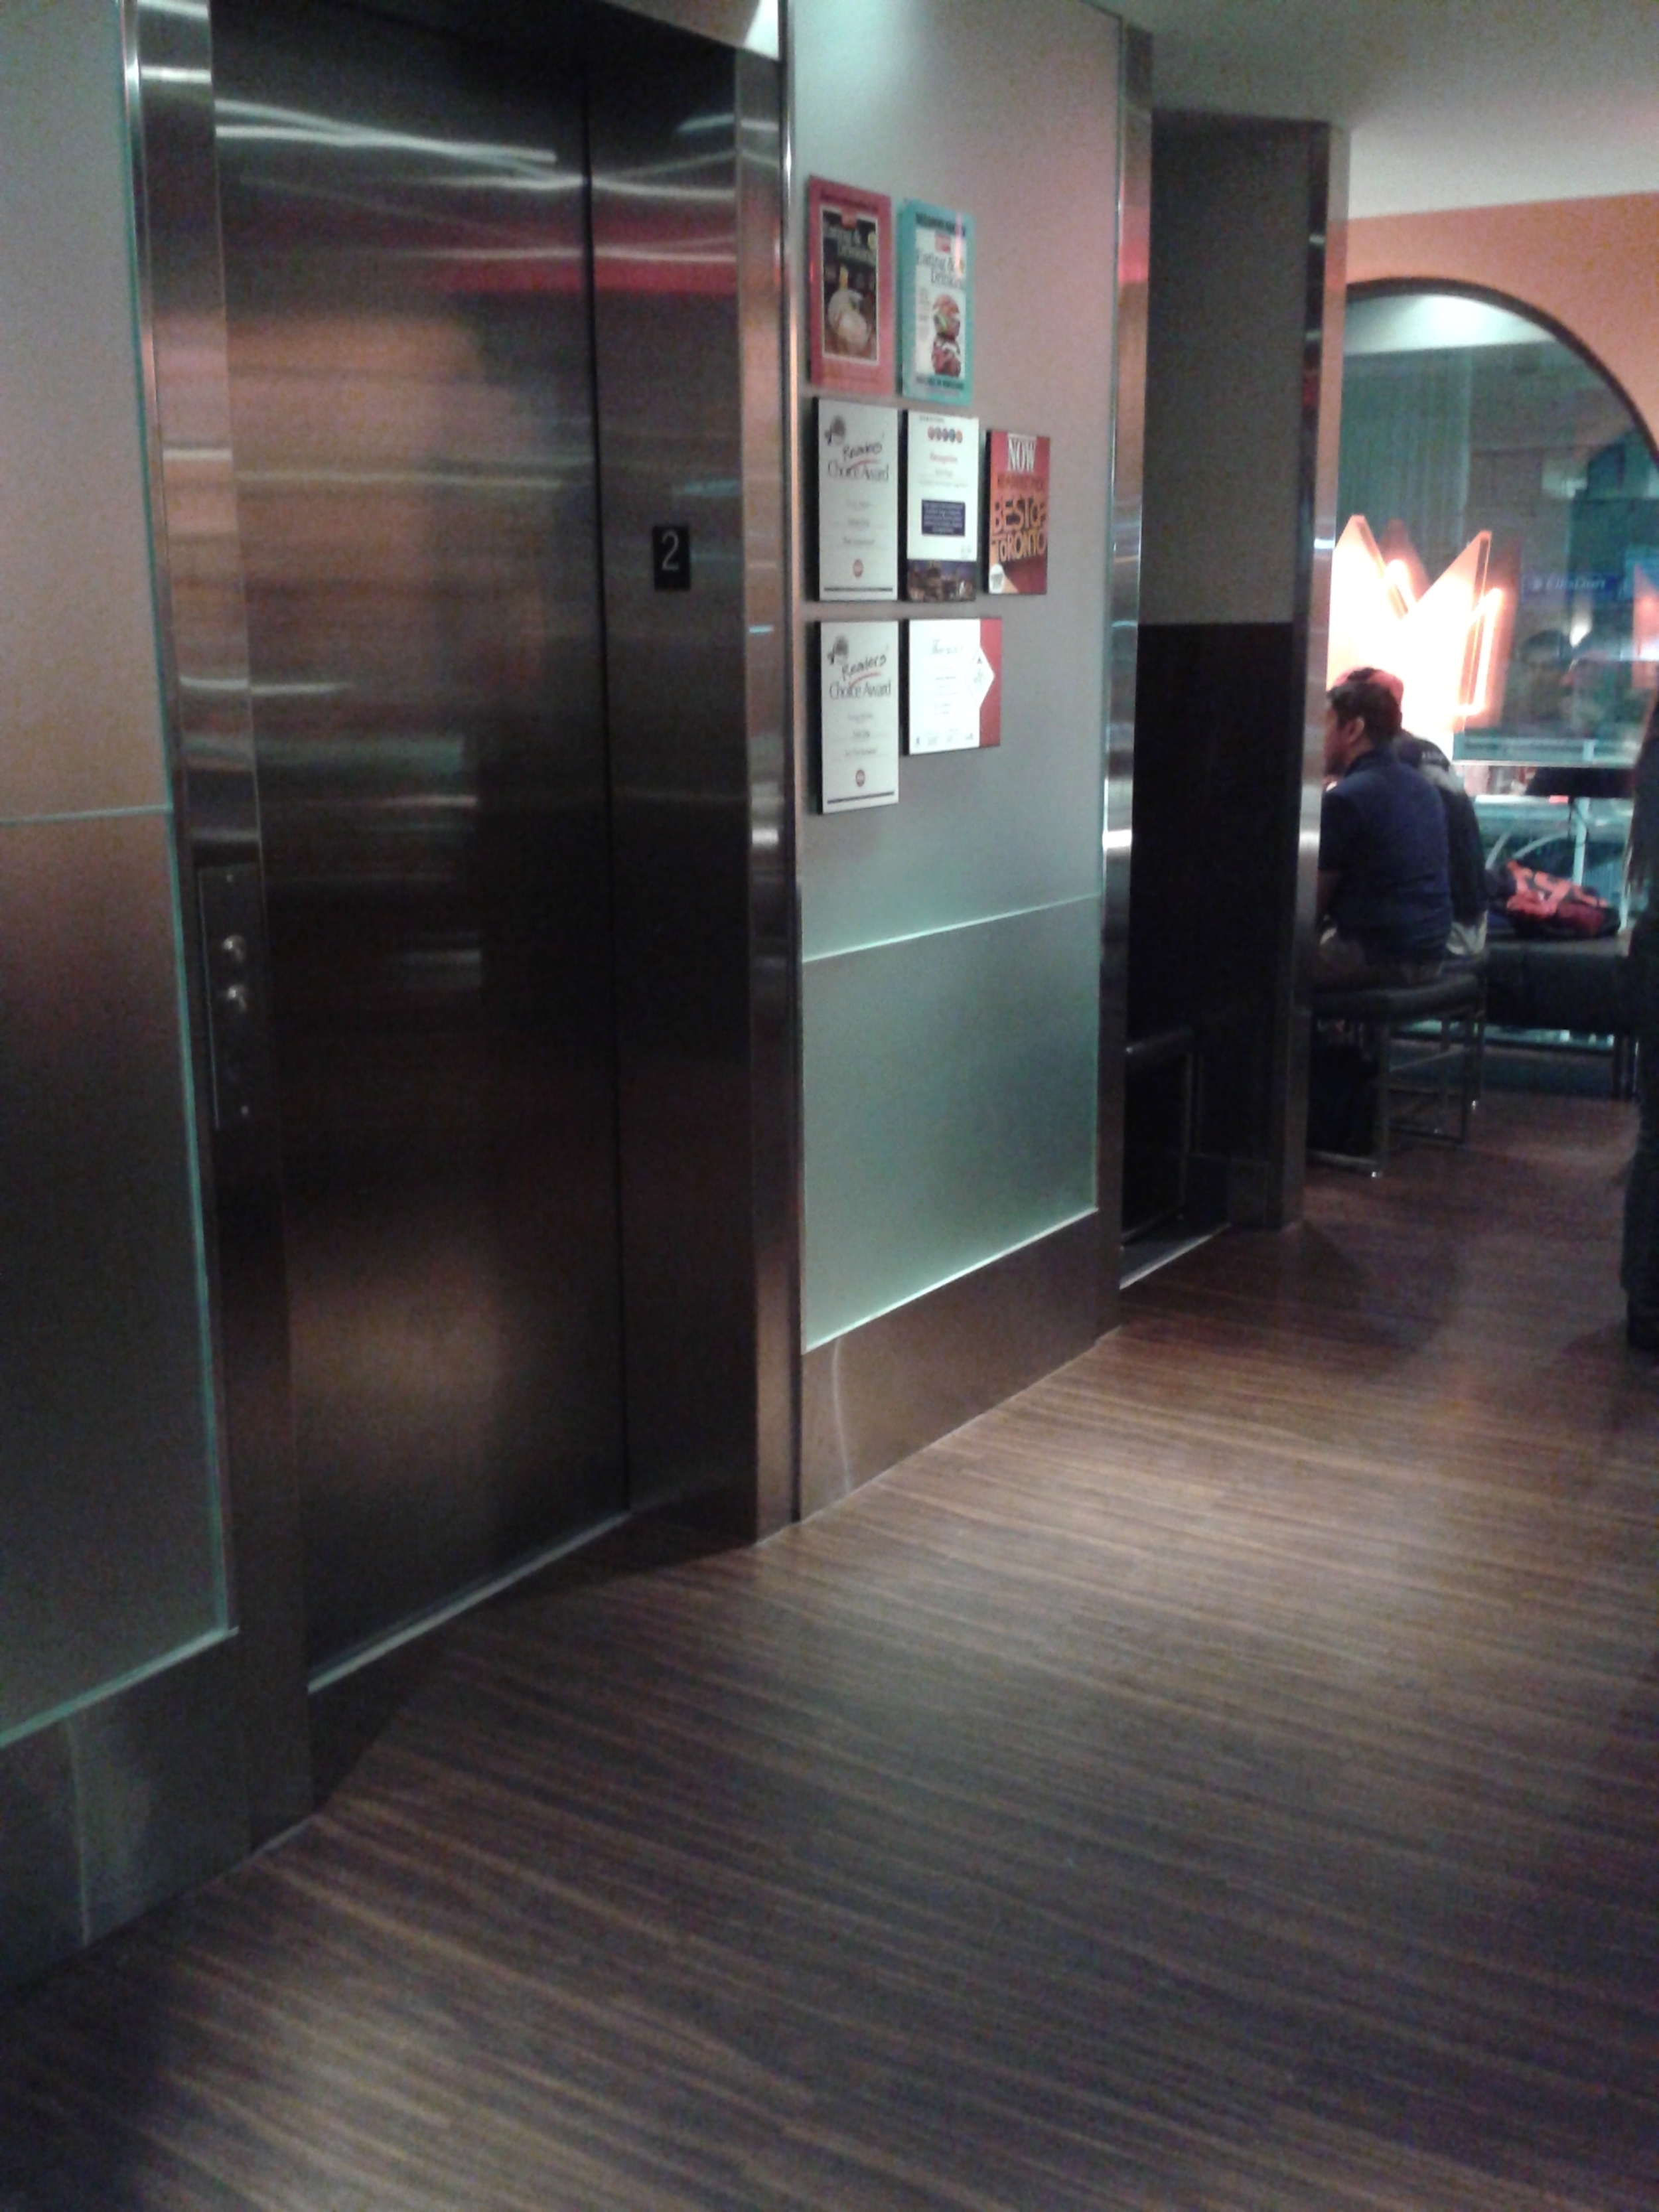 Picture of elevator entrance.